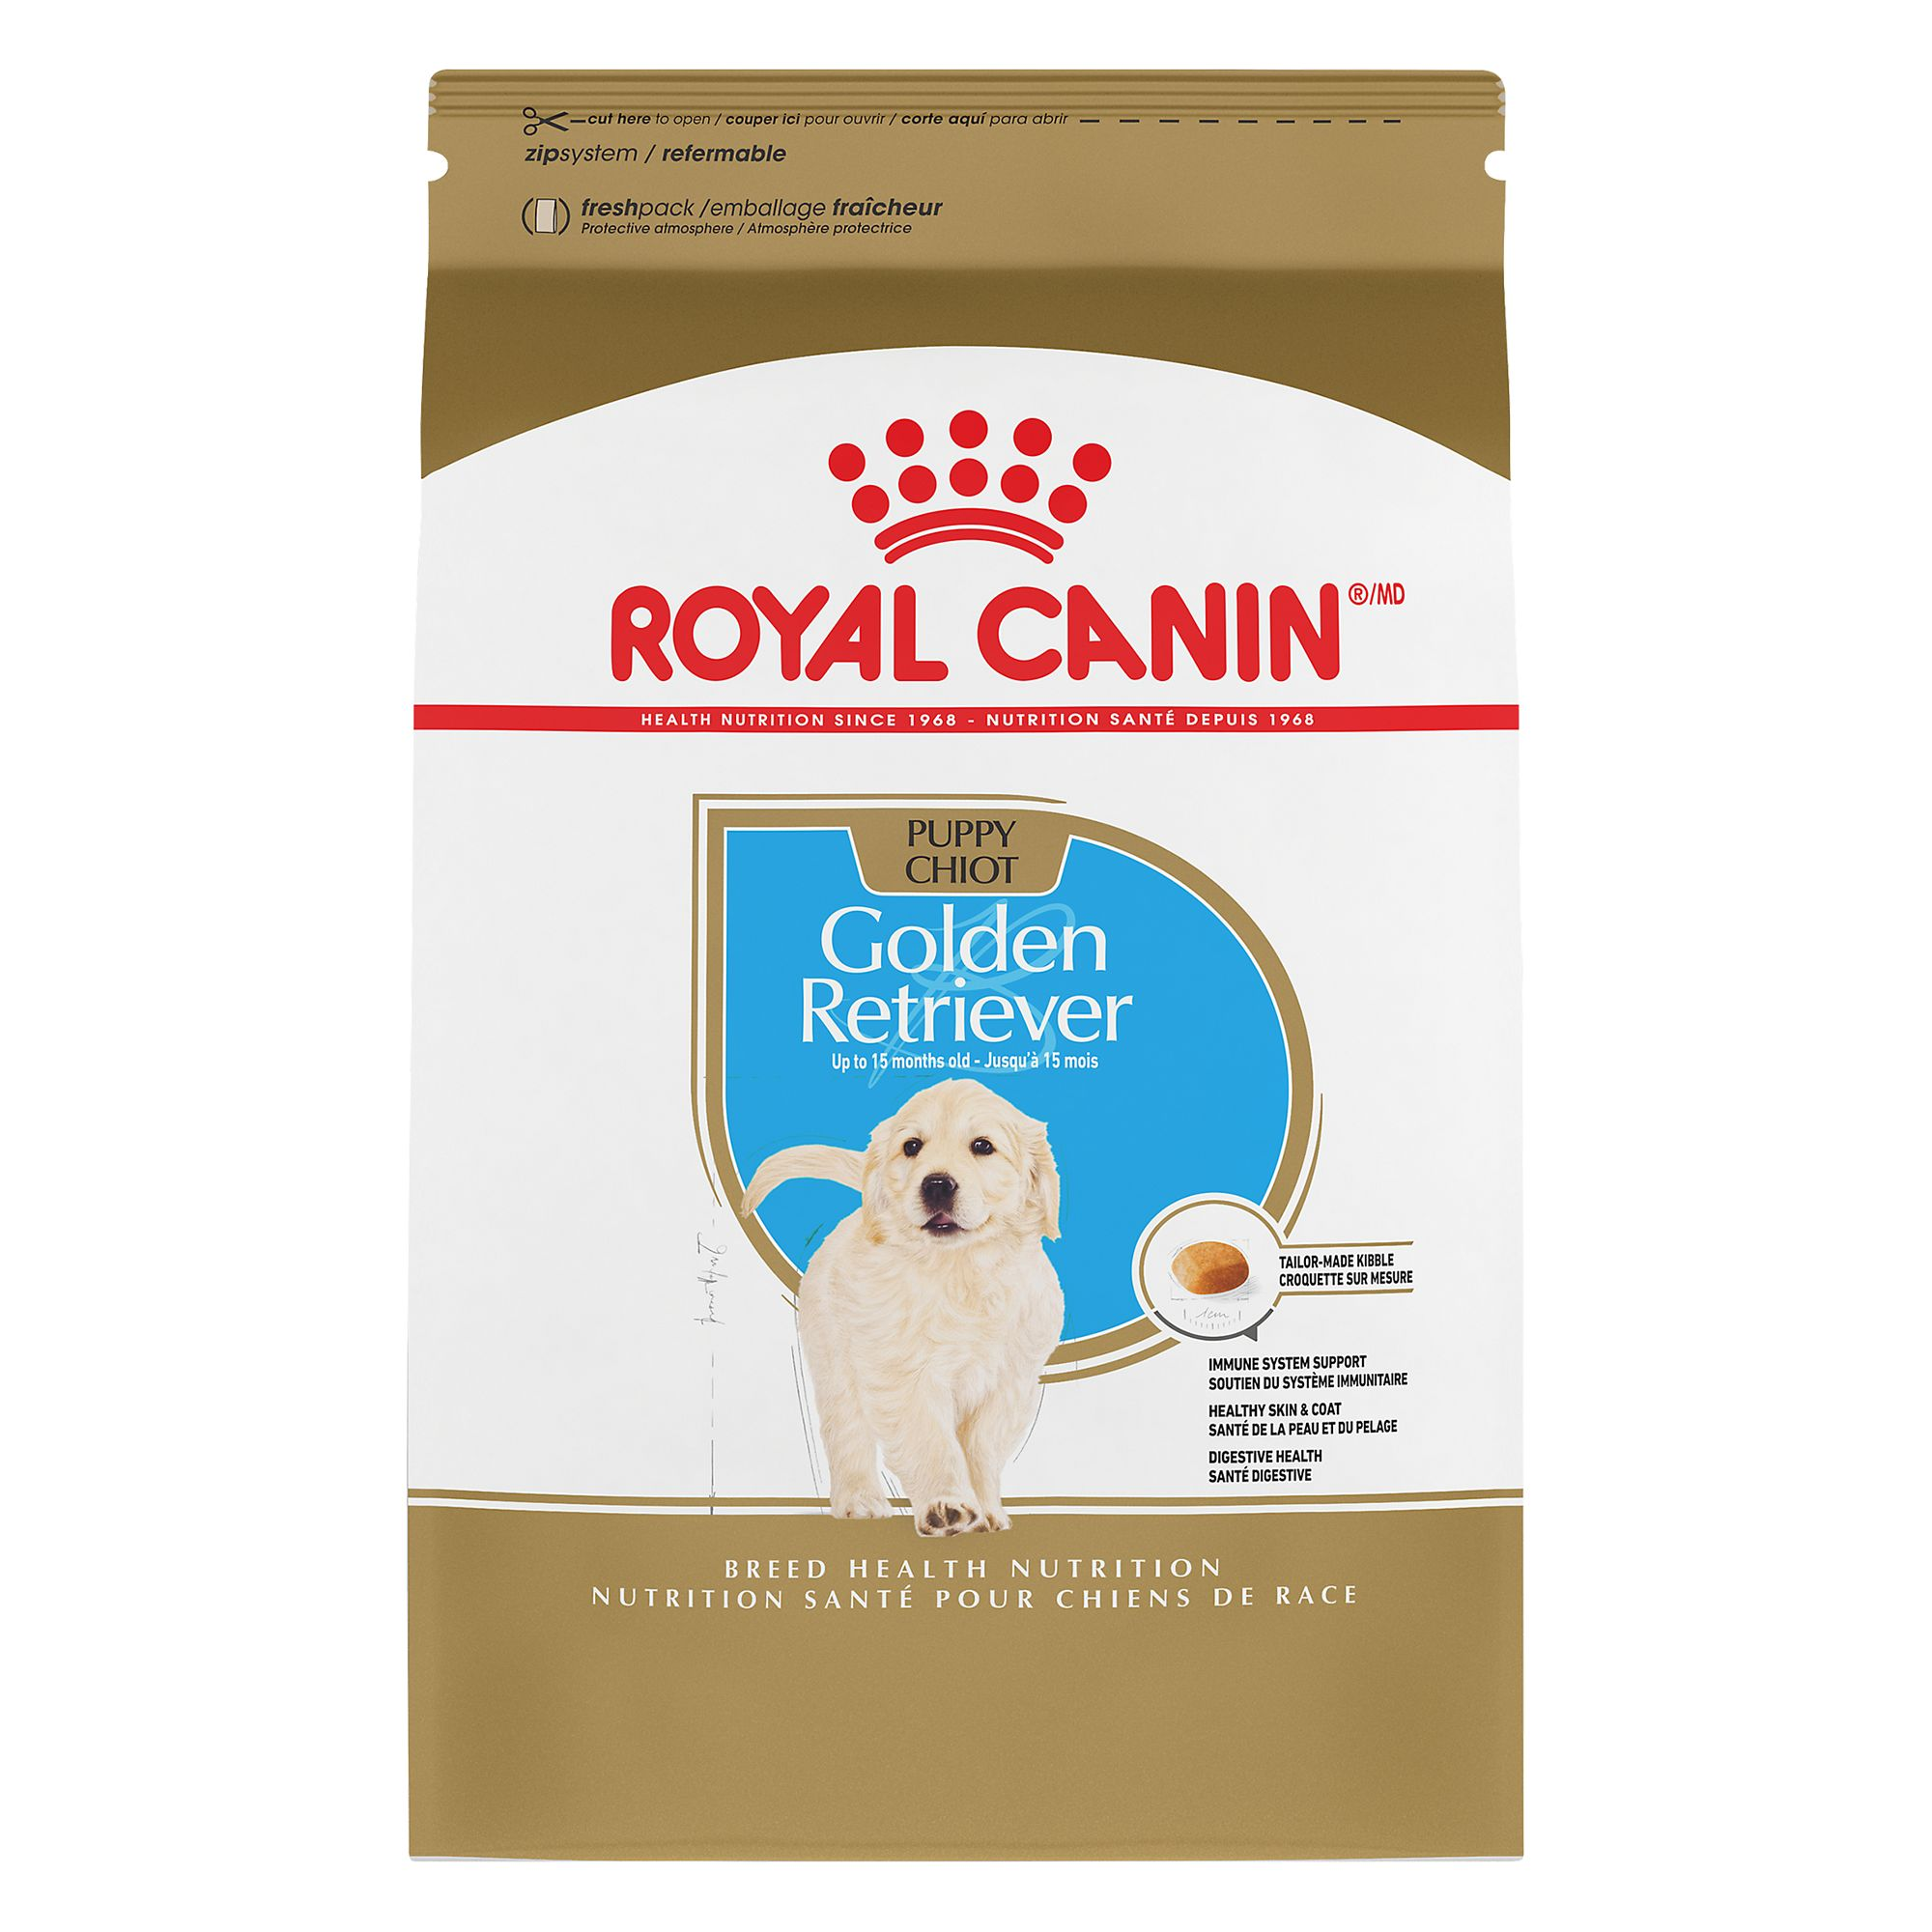 Royal Canin Breed Health Nutrition, Golden Retriever Puppy Food size: 30 Lb 5184508